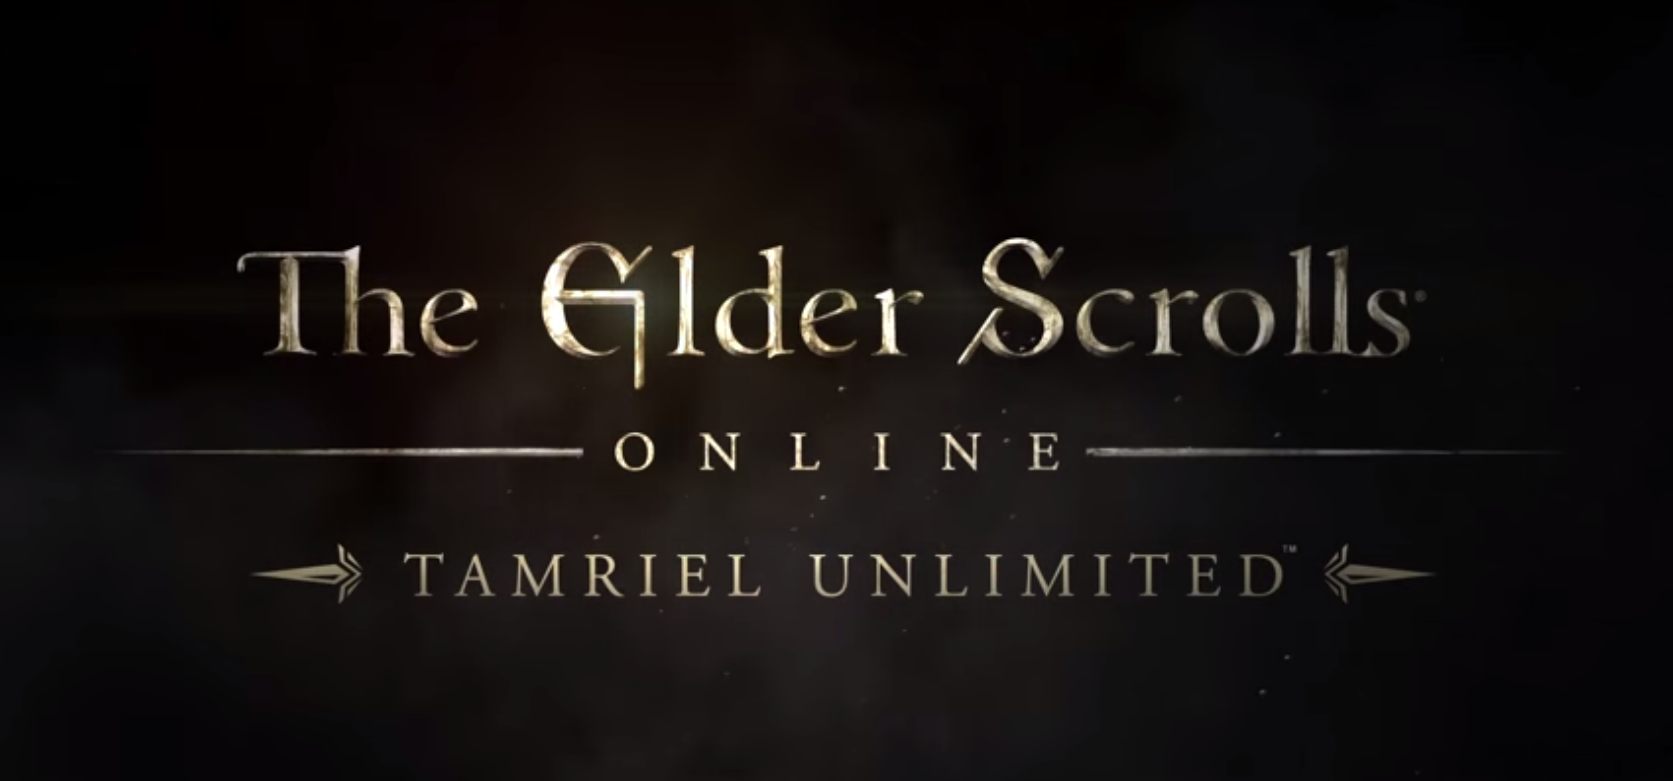 The Elder Scrolls Online Tamriel Unlimited E3 2015